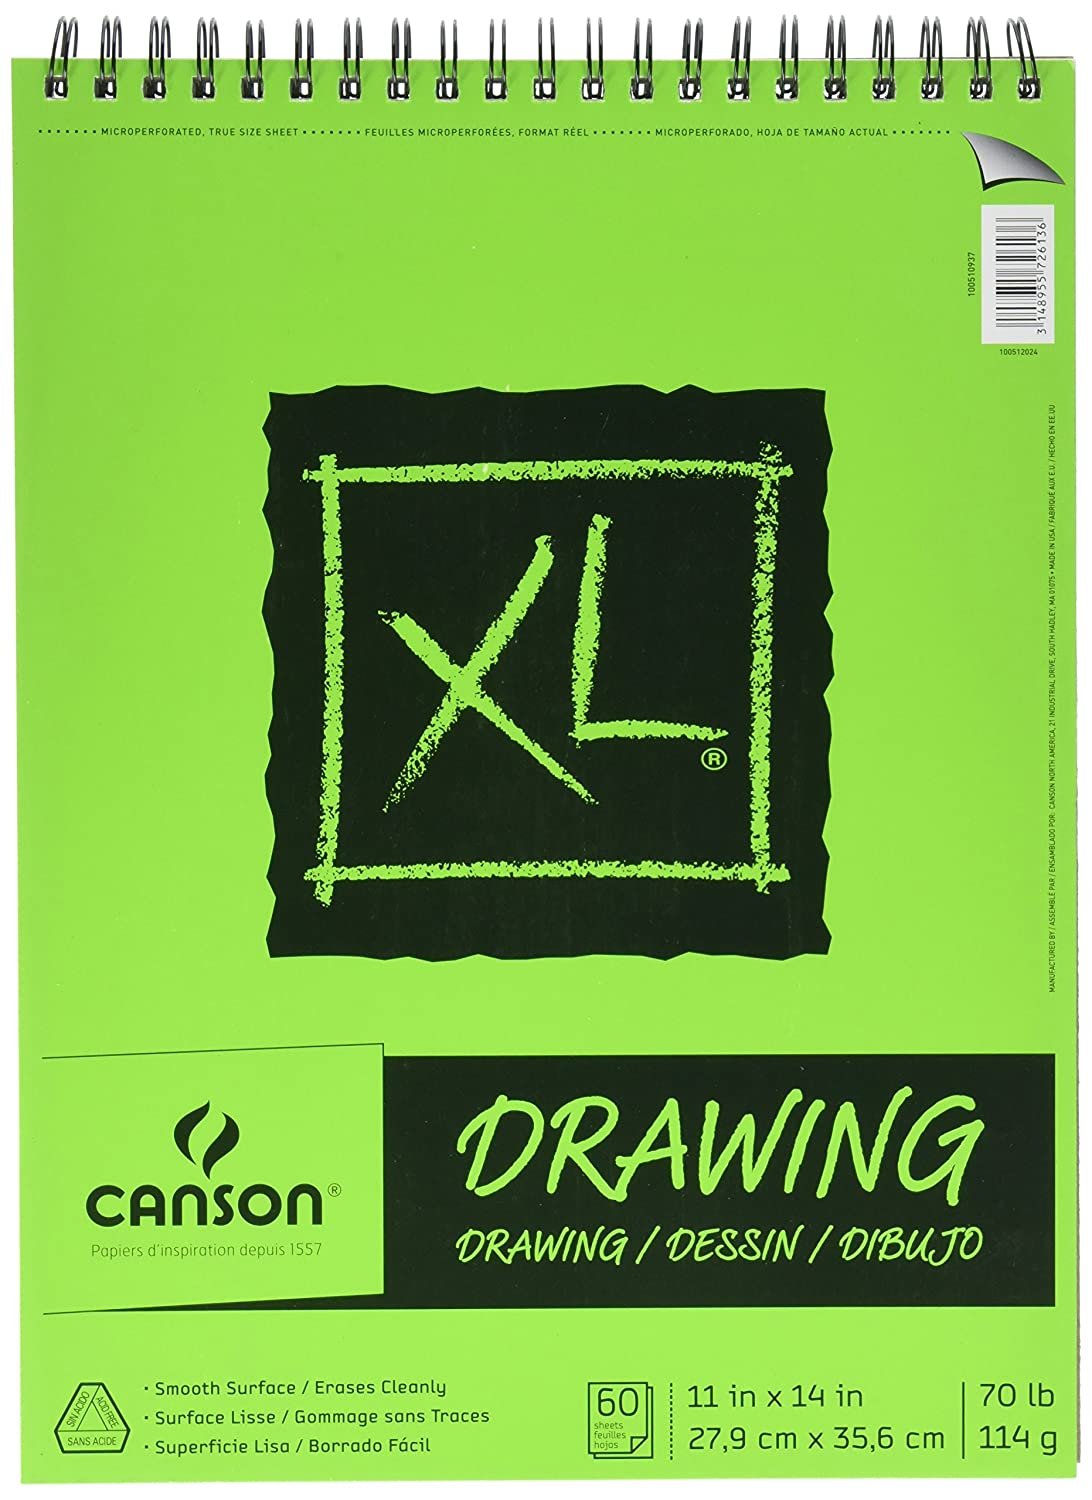 CANSON 70 lb/114g XL Drawing Pad, 18 x 24, 30 Sheets 18 x 24 Canson Inc. 100510917